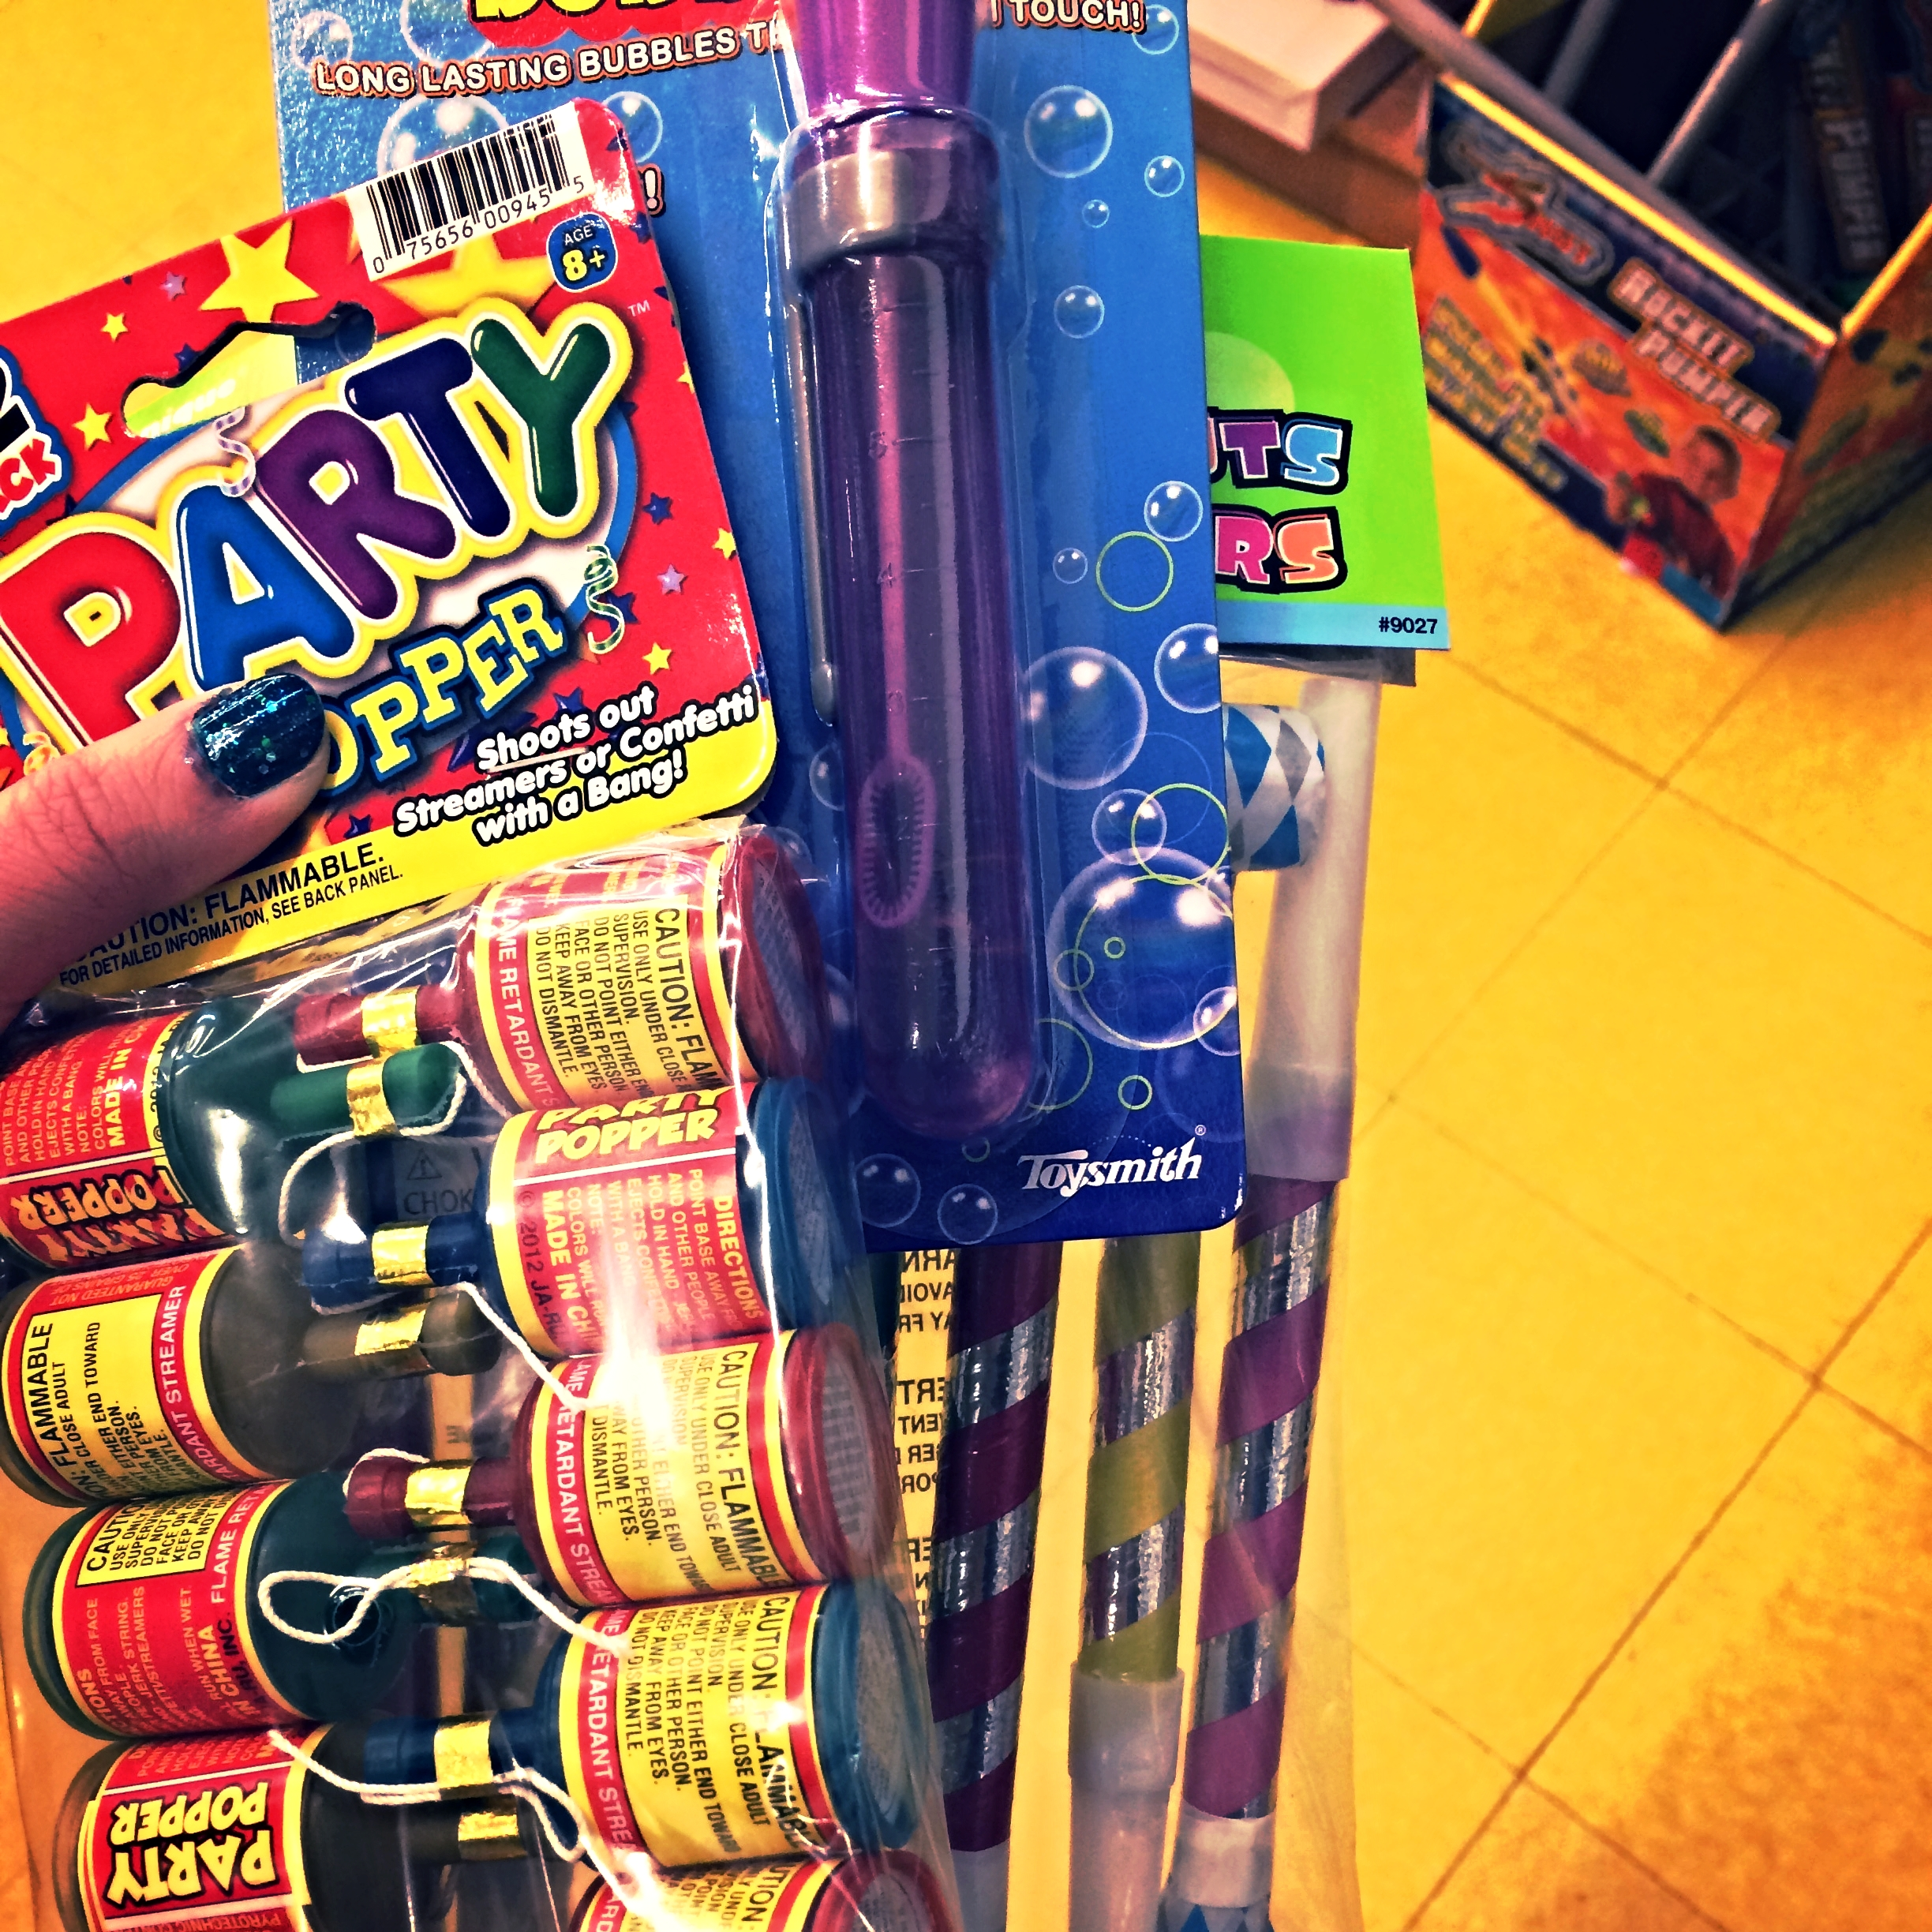 Party supplies. Not pictured: bubbly.